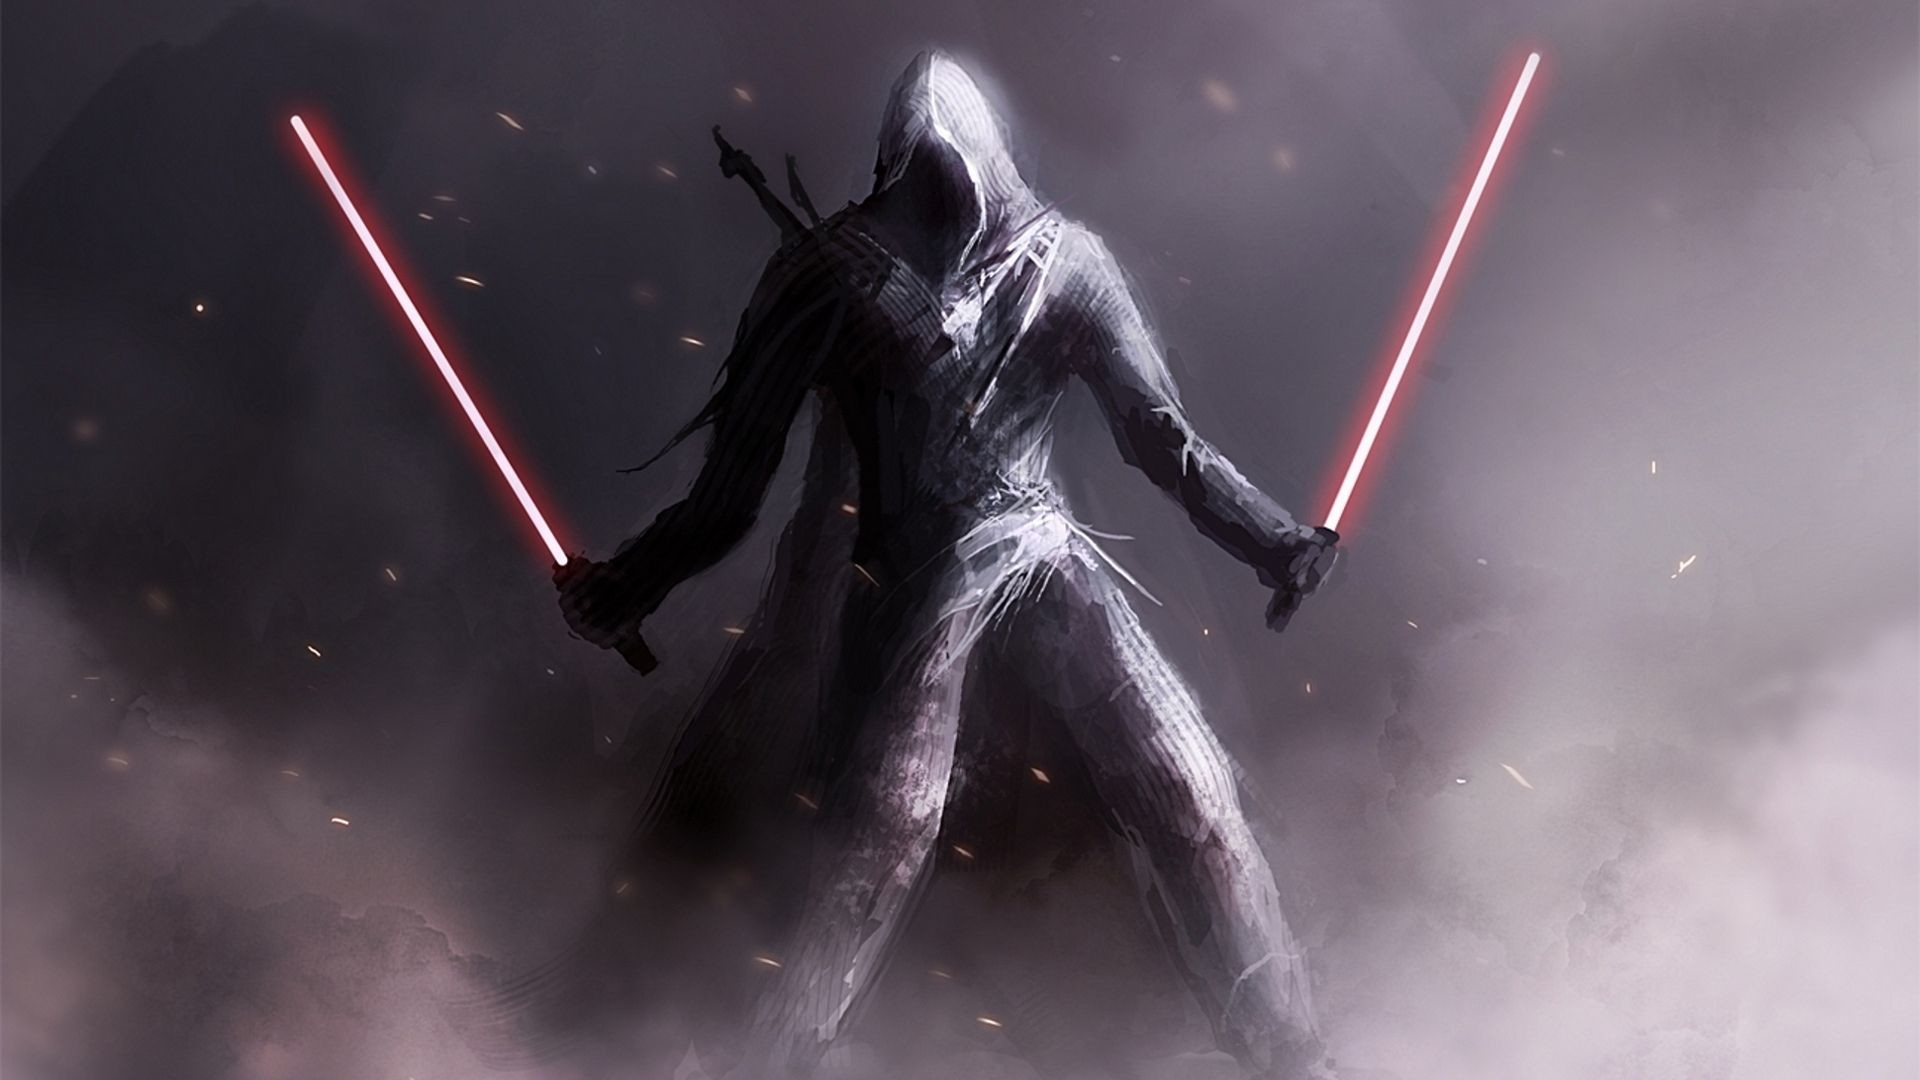 Epic Star Wars Wallpaper 71 Pictures